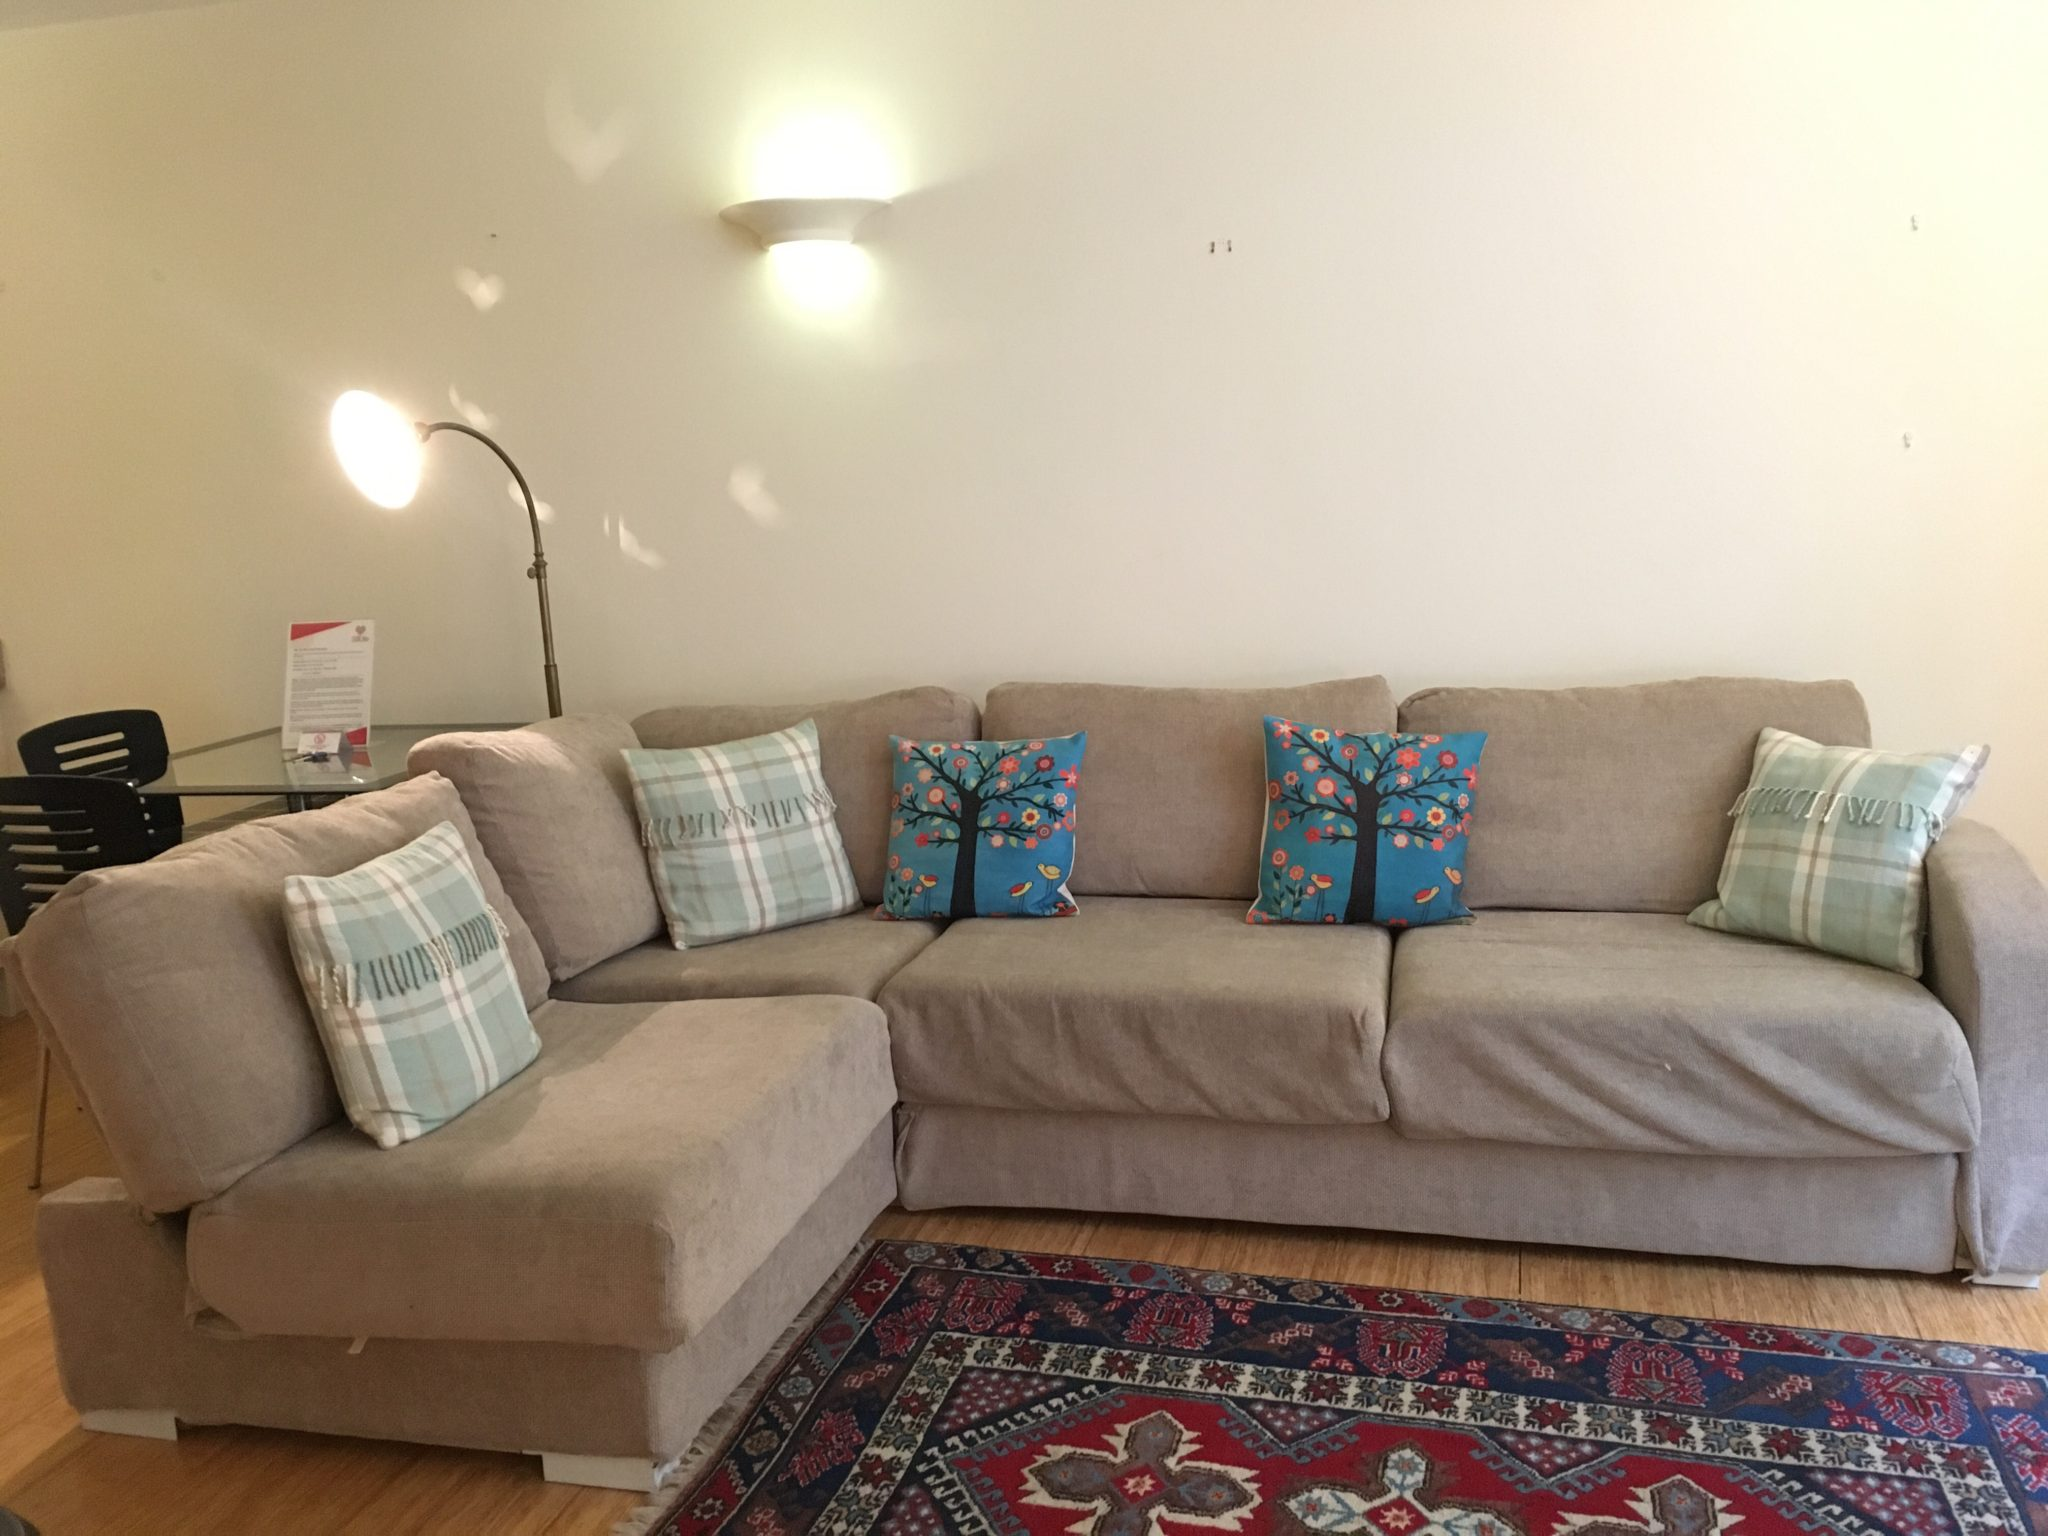 Looking-for-affordable-accommodation-in-within-the-City-of-London?-why-not-book-out-lovely-Monument-Serviced-Accommodation?-call-today-for-great-rates.